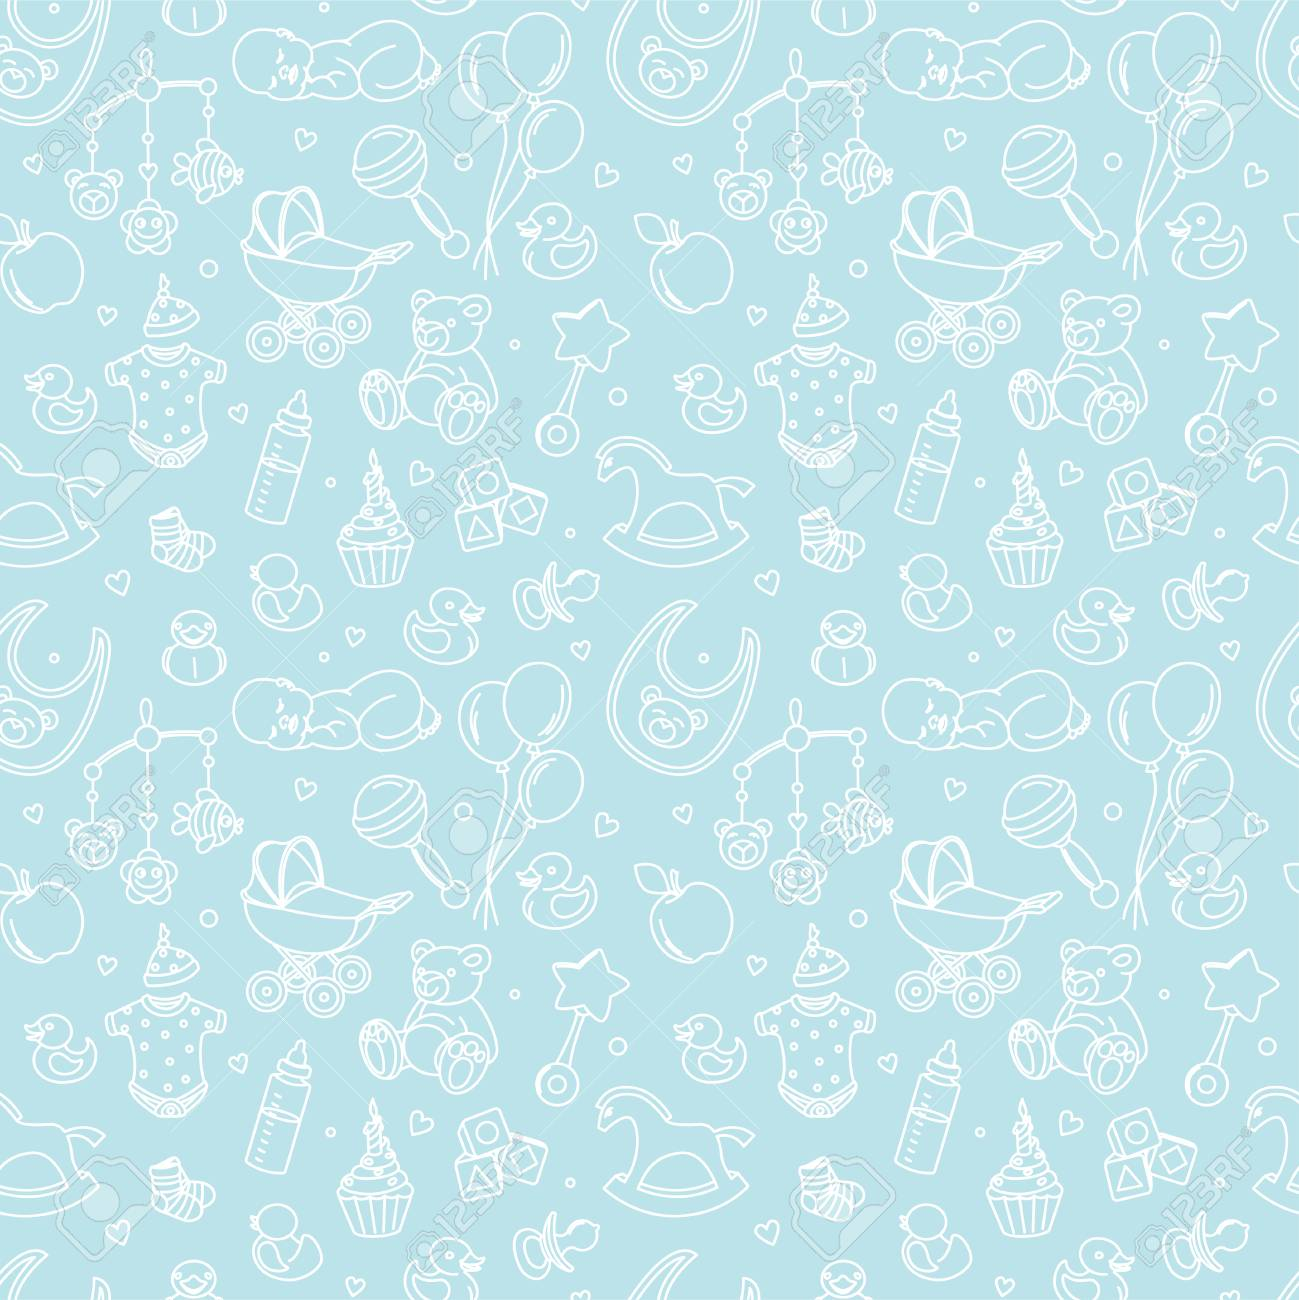 Newborn baby shower seamless pattern for textile, print, greeting cards, wrapping paper,